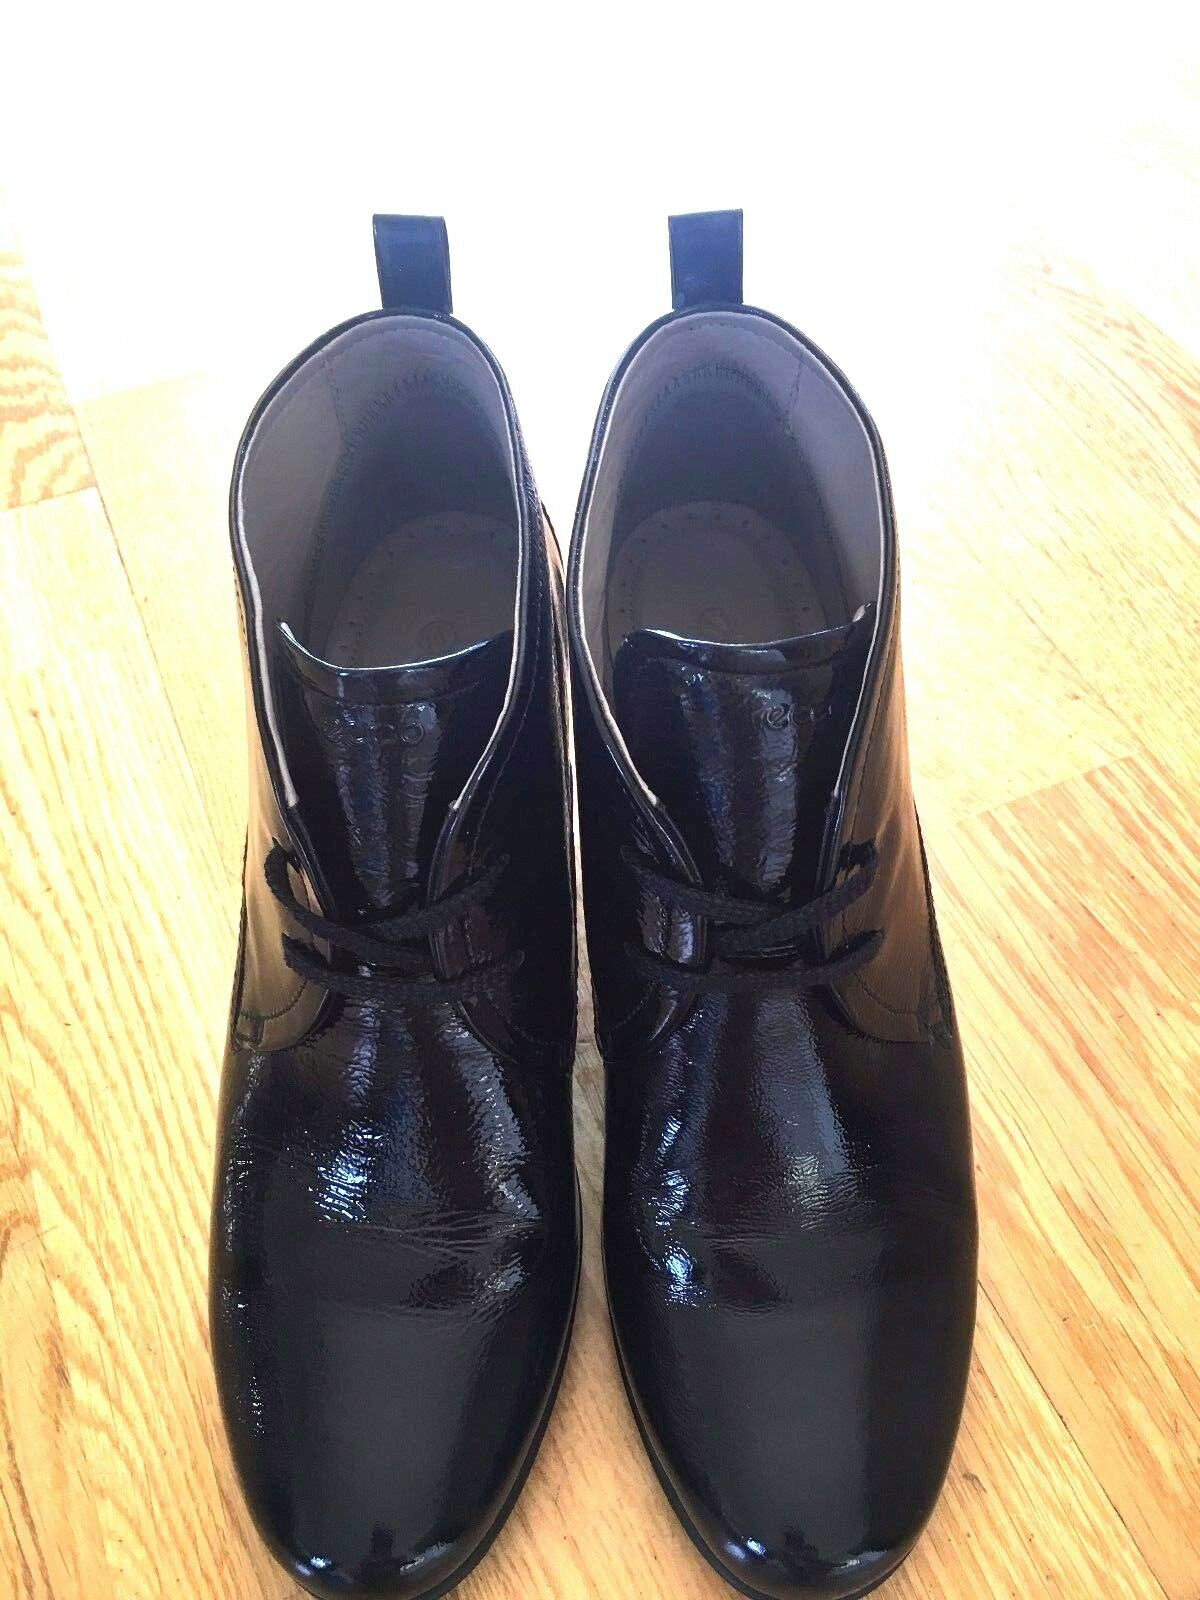 NEW  ECCO BOOTS Size 41